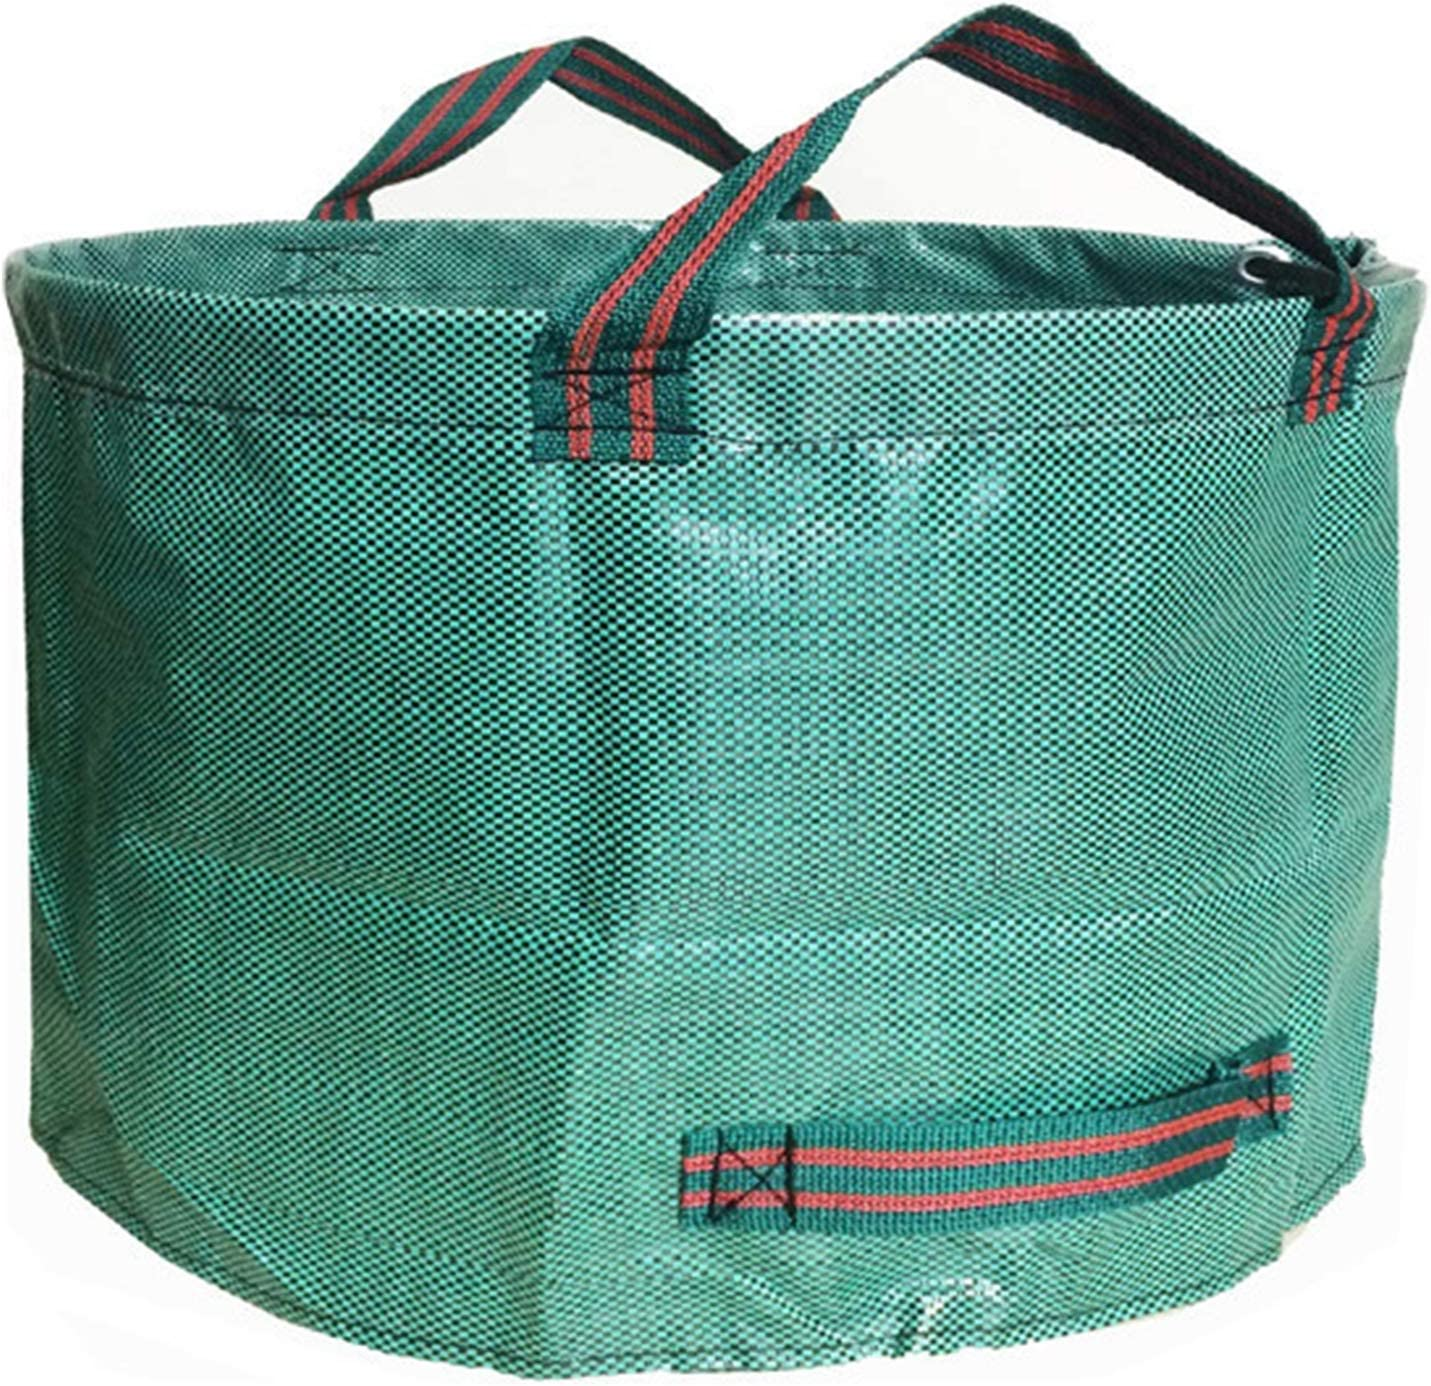 Feamos 63 Gallon Large Garden Plant Leaf Surprise price Grow Bags Waste Bag A surprise price is realized Pat